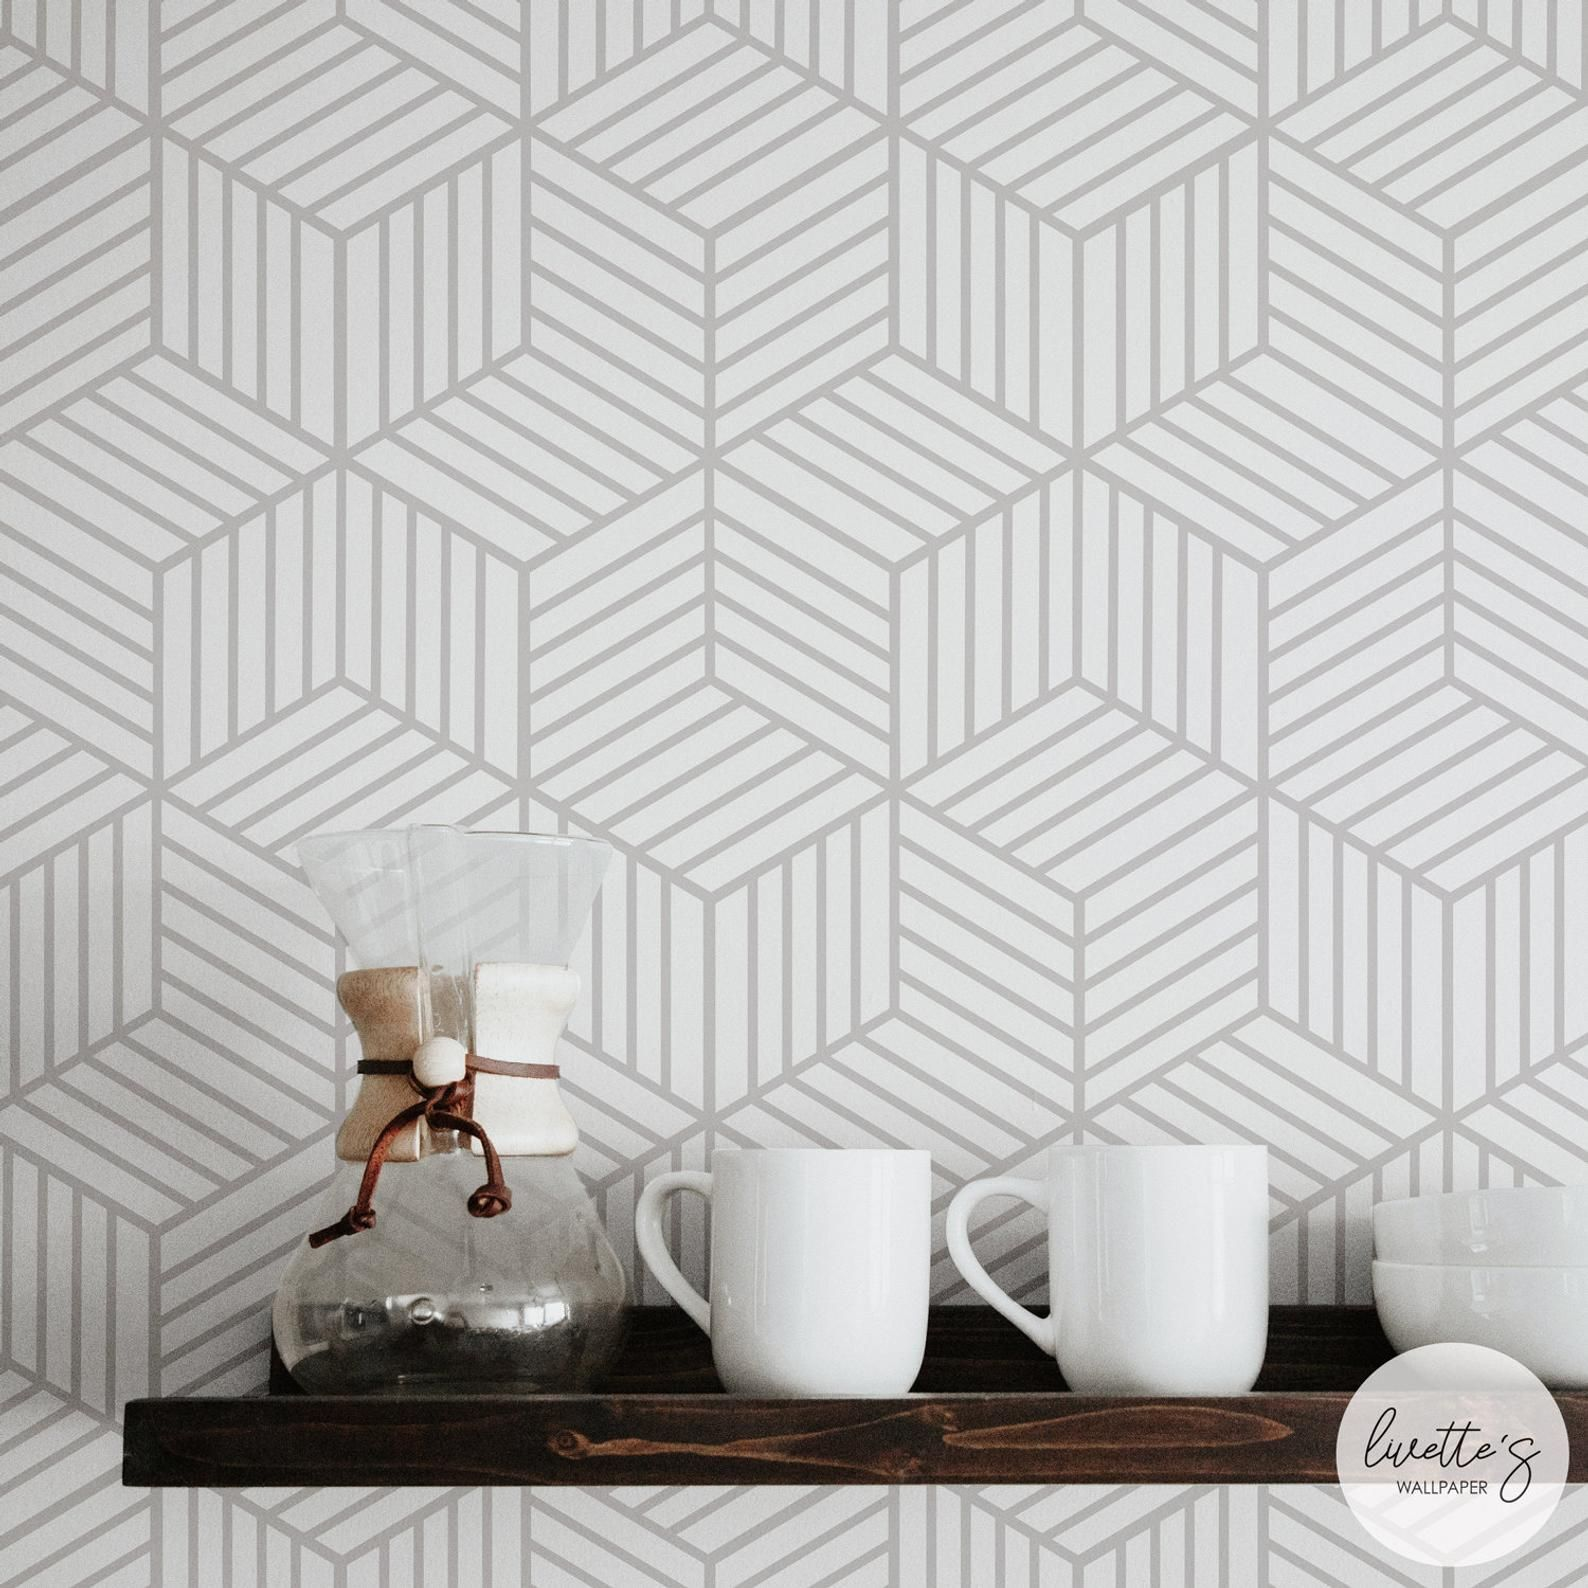 Cube Removable Wallpaper In Light Grey Color Available In Etsy Cube Design Removable Wallpaper Traditional Wallpaper